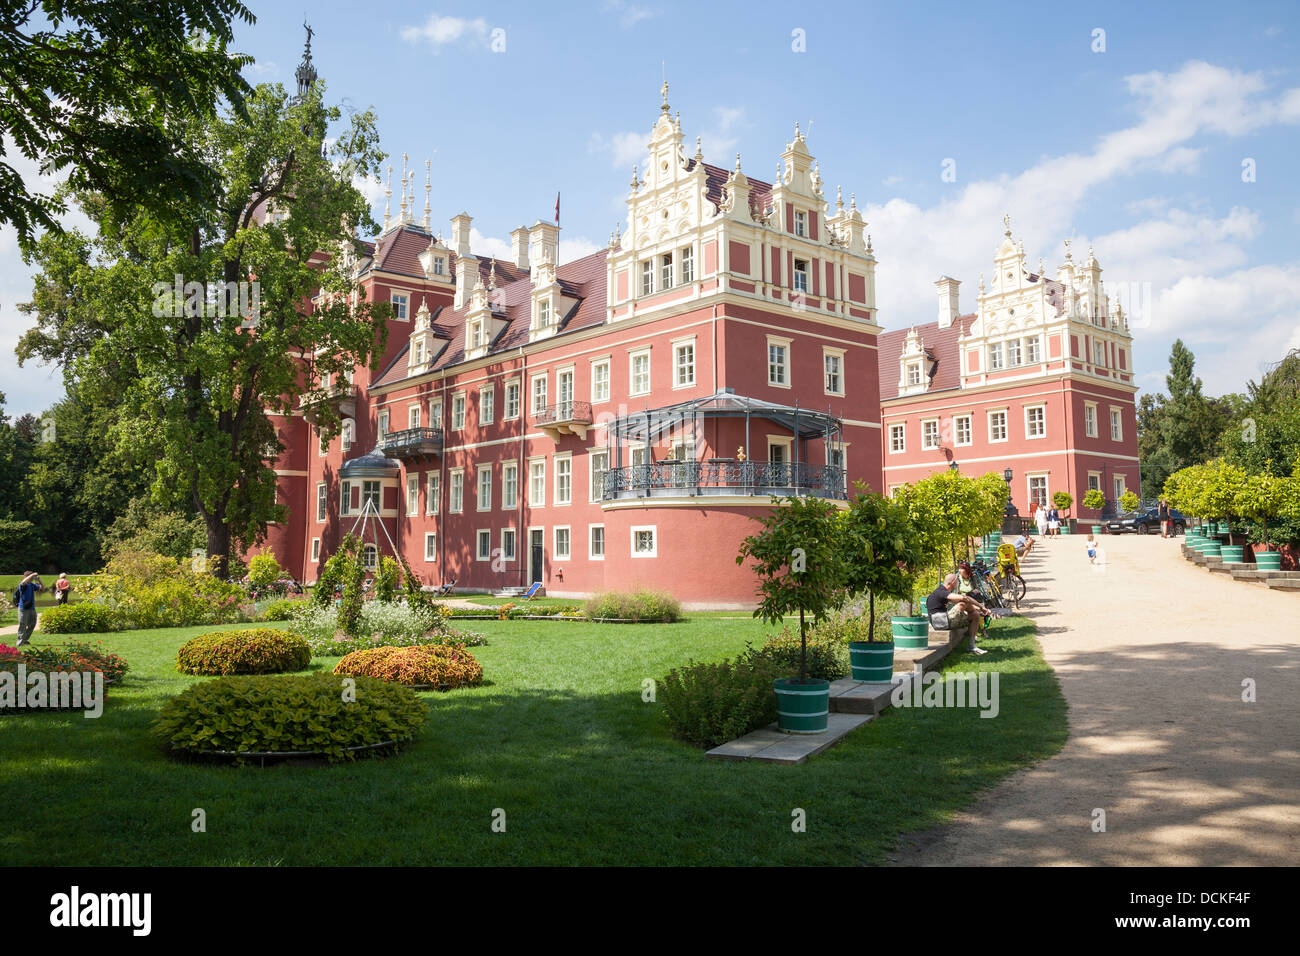 neuen schloss bad muskau in muskauer park fuerst pueckler park stock photo royalty free. Black Bedroom Furniture Sets. Home Design Ideas